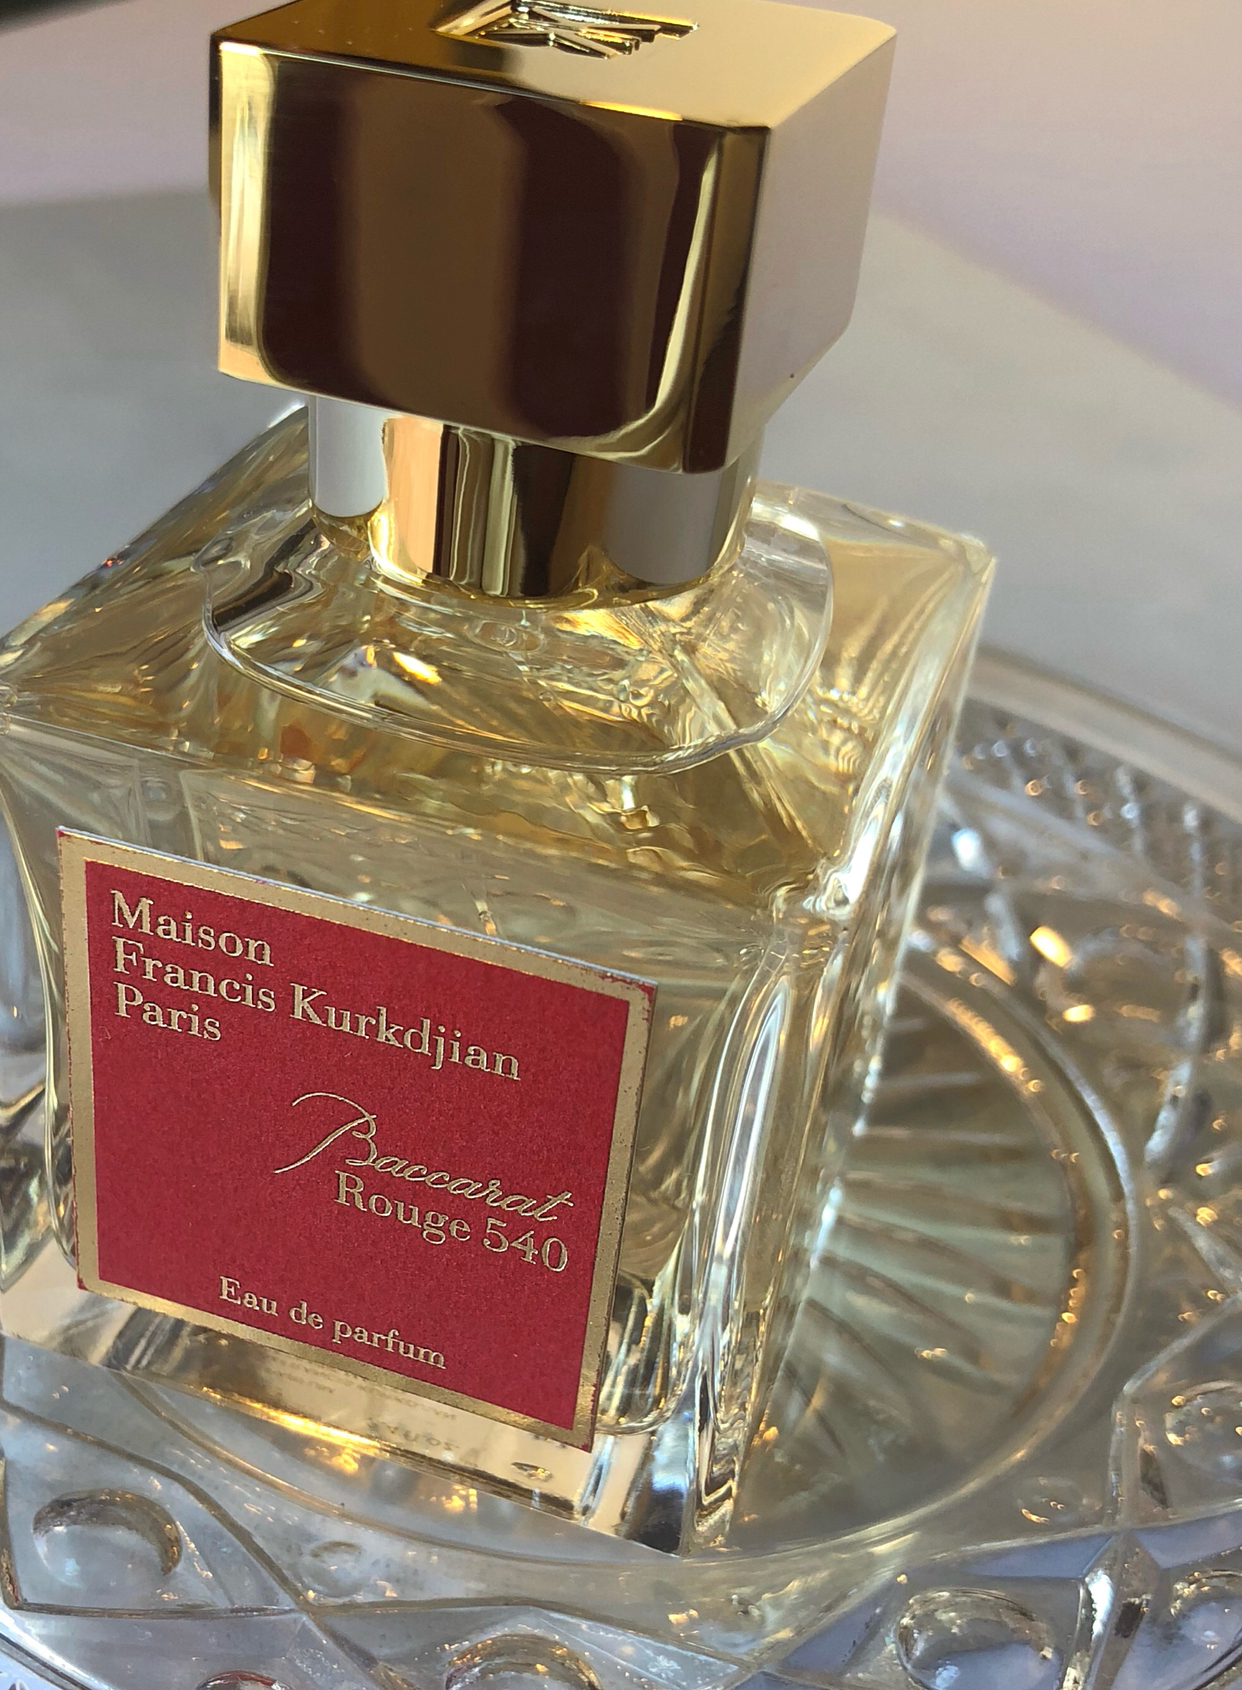 Cultivating Your Scent Ft Baccarat Rouge 540